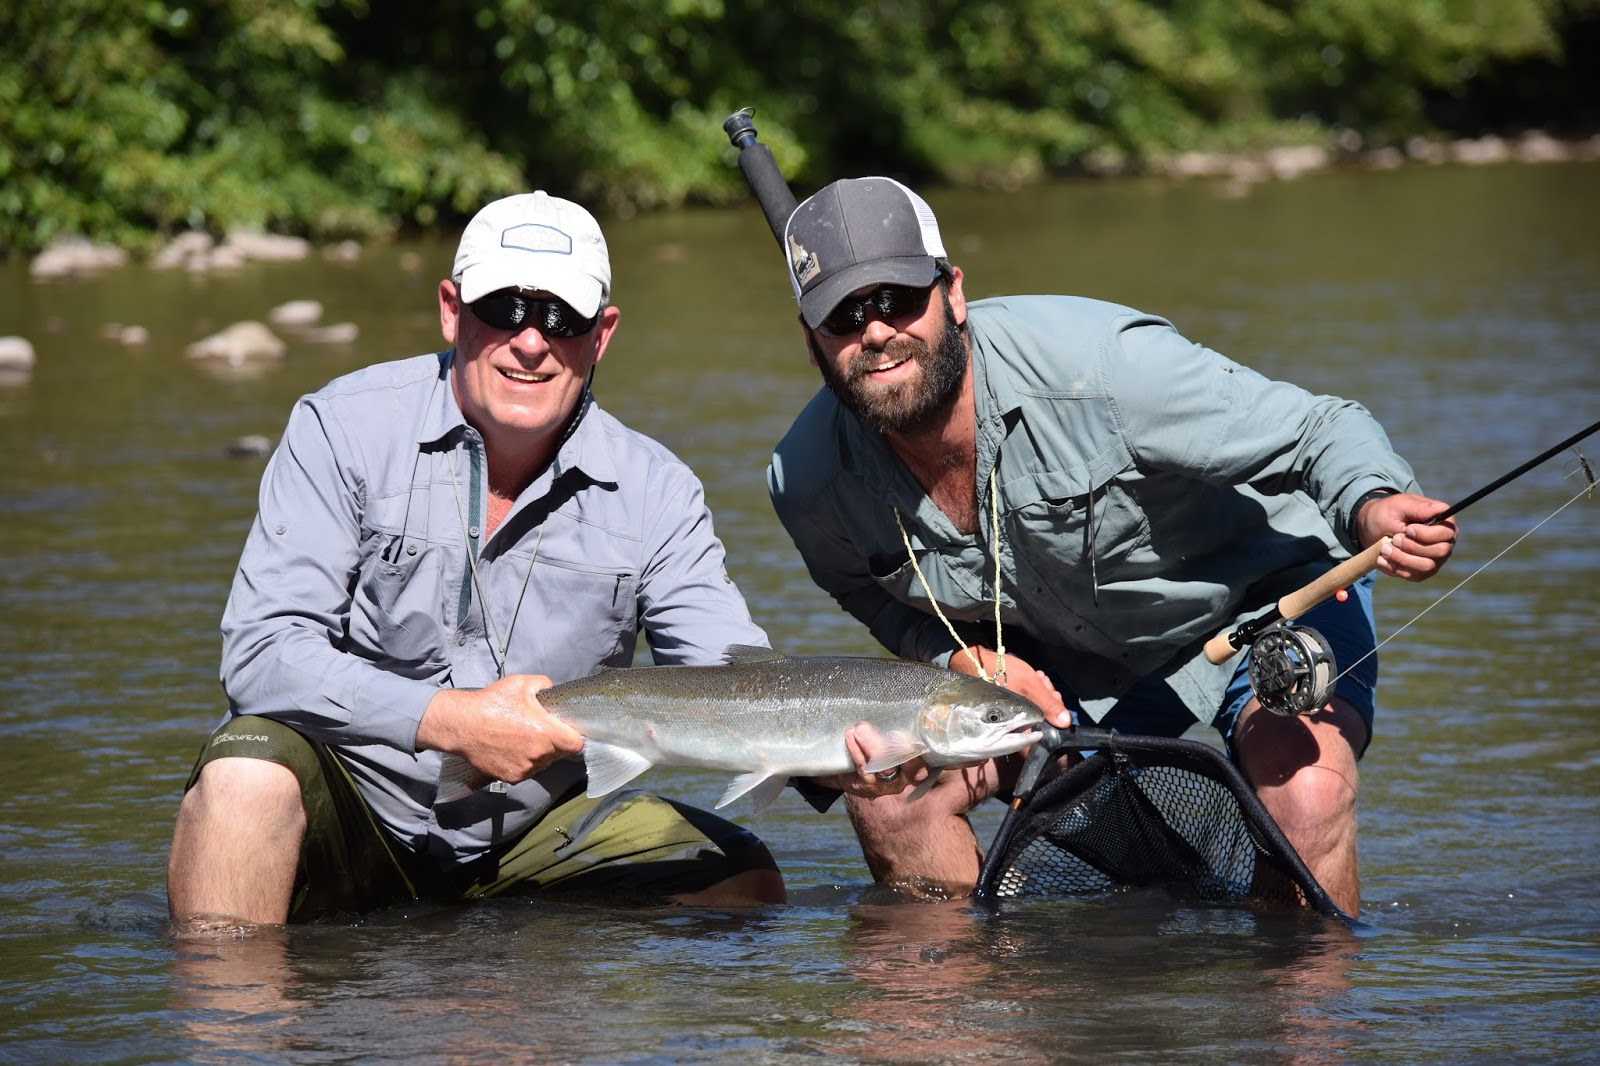 Klickitat river report 7 18 15 the evening hatch for Klickitat river fishing report